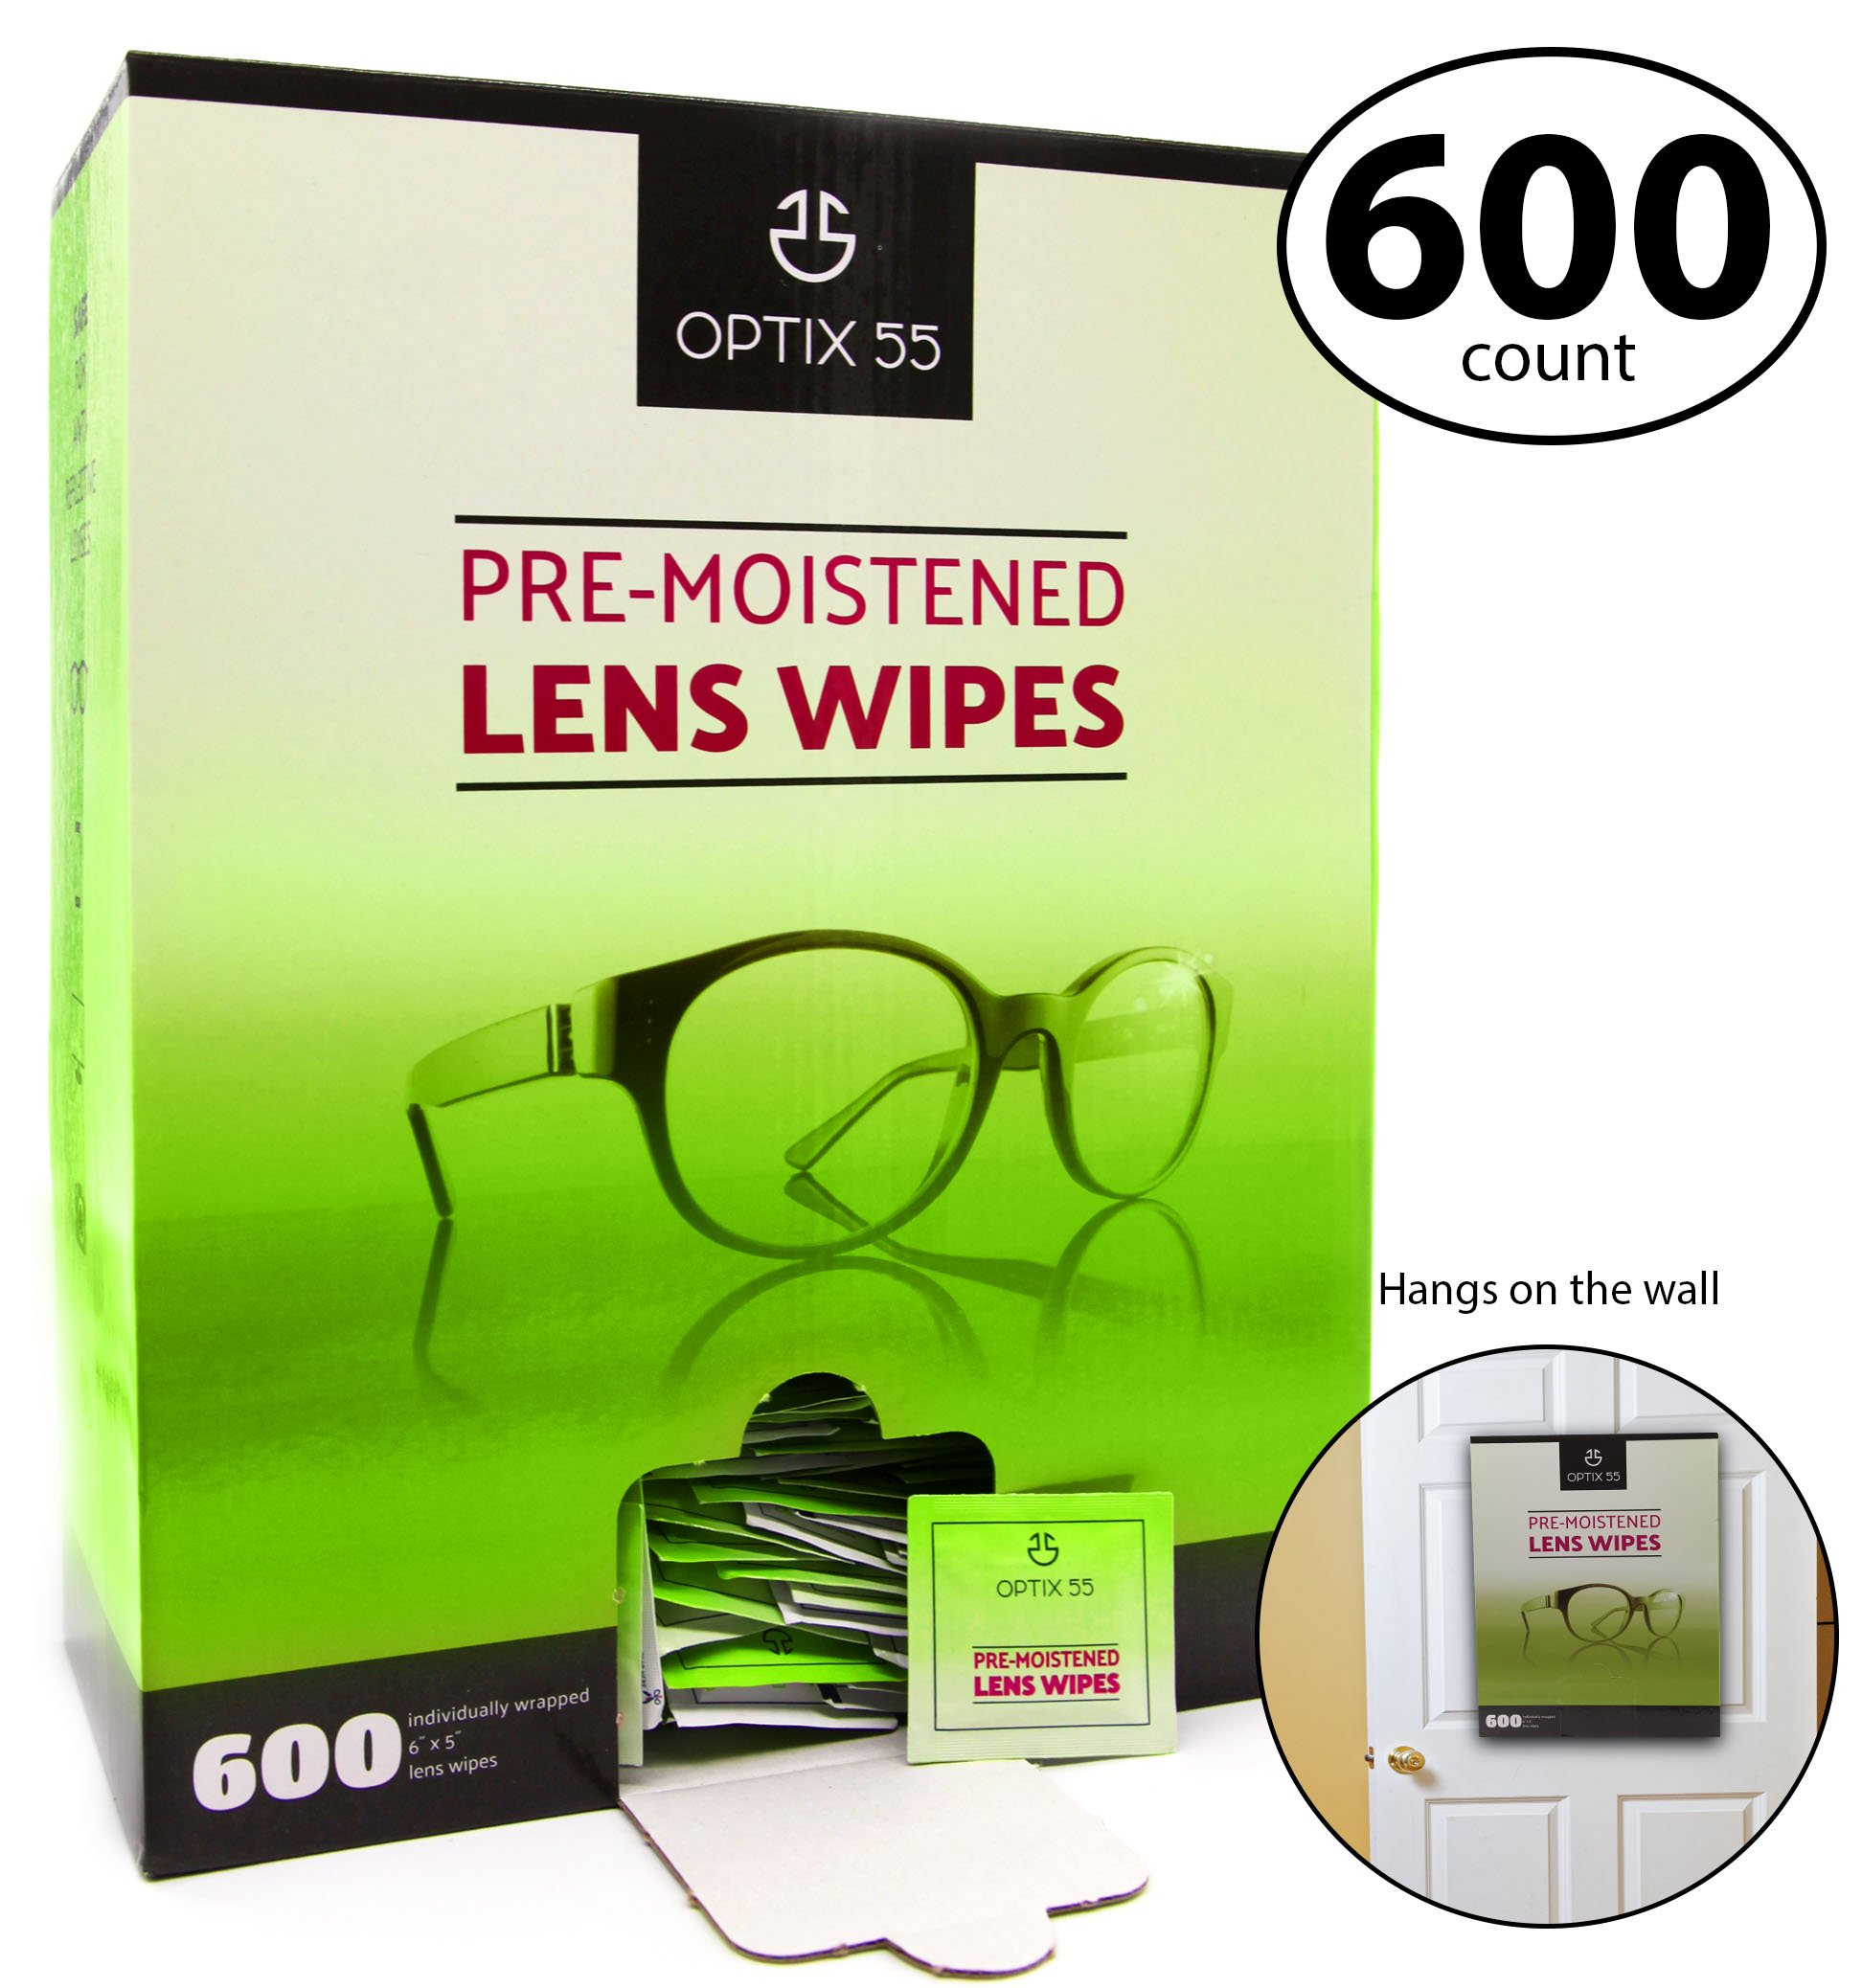 Optix 55 Pre-Moistened Lens Cleaning Wipes - 600 Cloths - Safely Cleans Glasses, Sunglasses, Camera Lenses, and Electronic Quickly and Efficiently - Travel